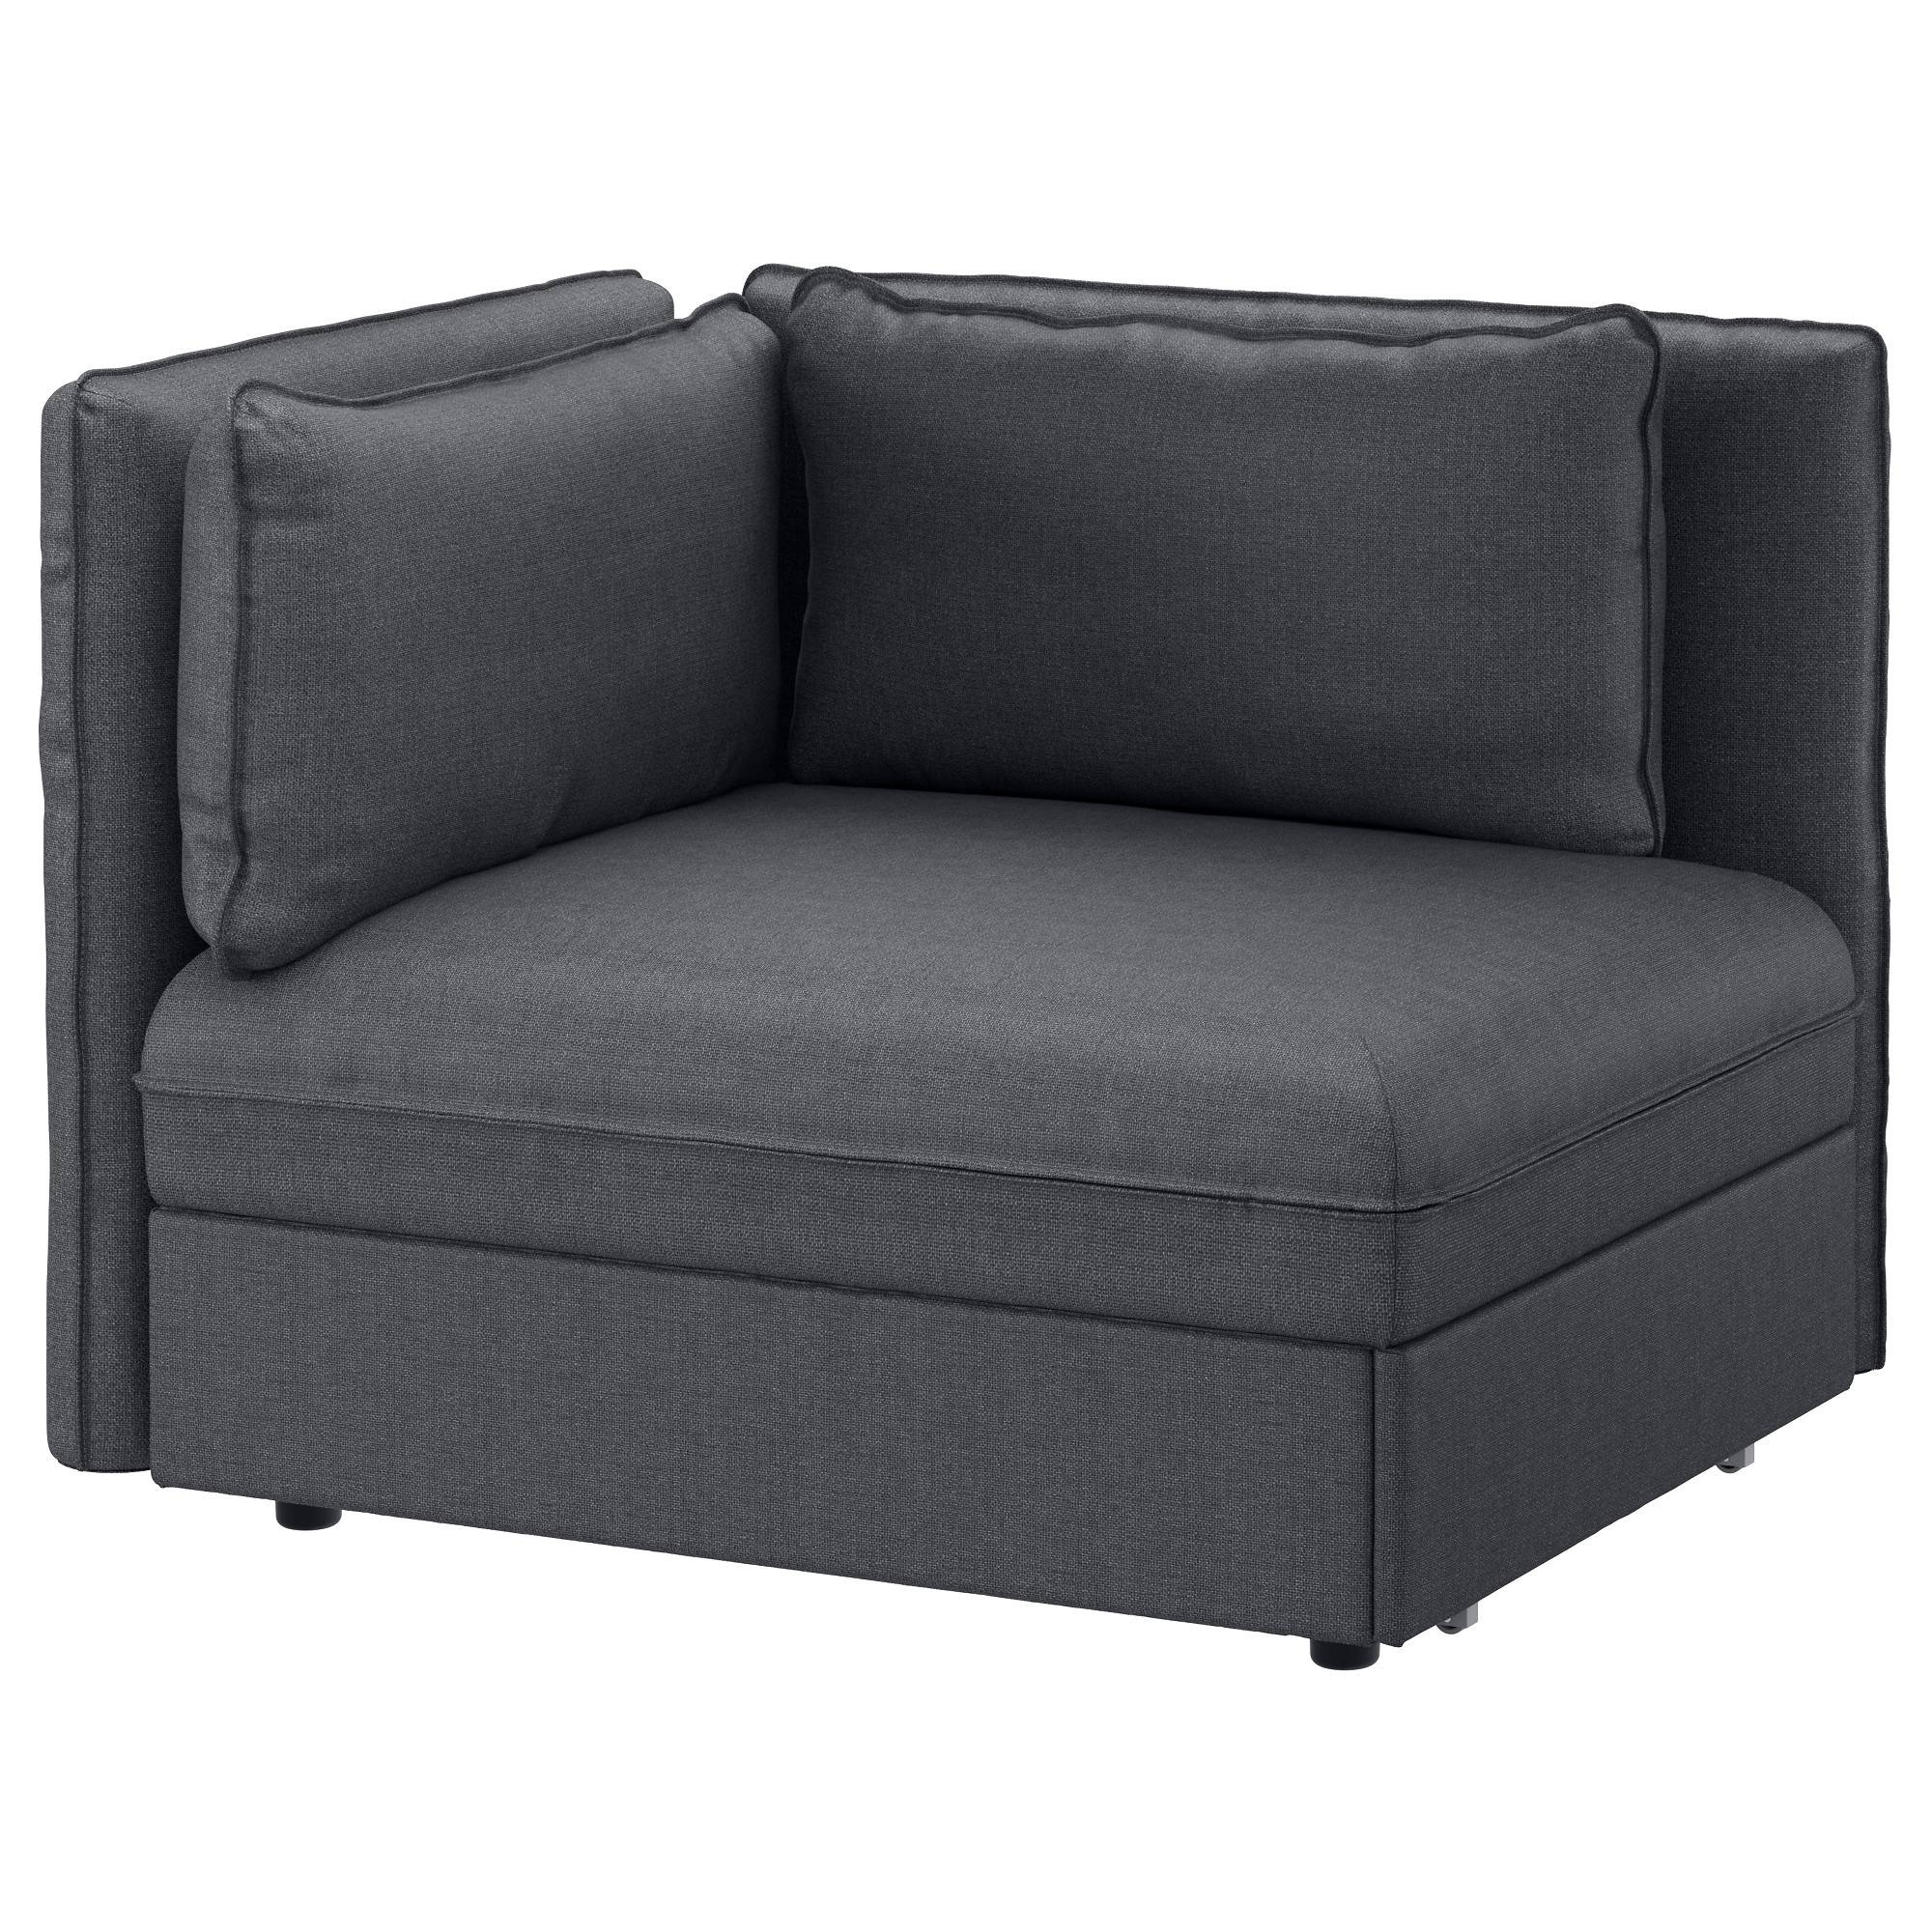 Sleeper-Sofas & Chair Beds - Ikea in Sofa Beds Chairs (Image 12 of 15)